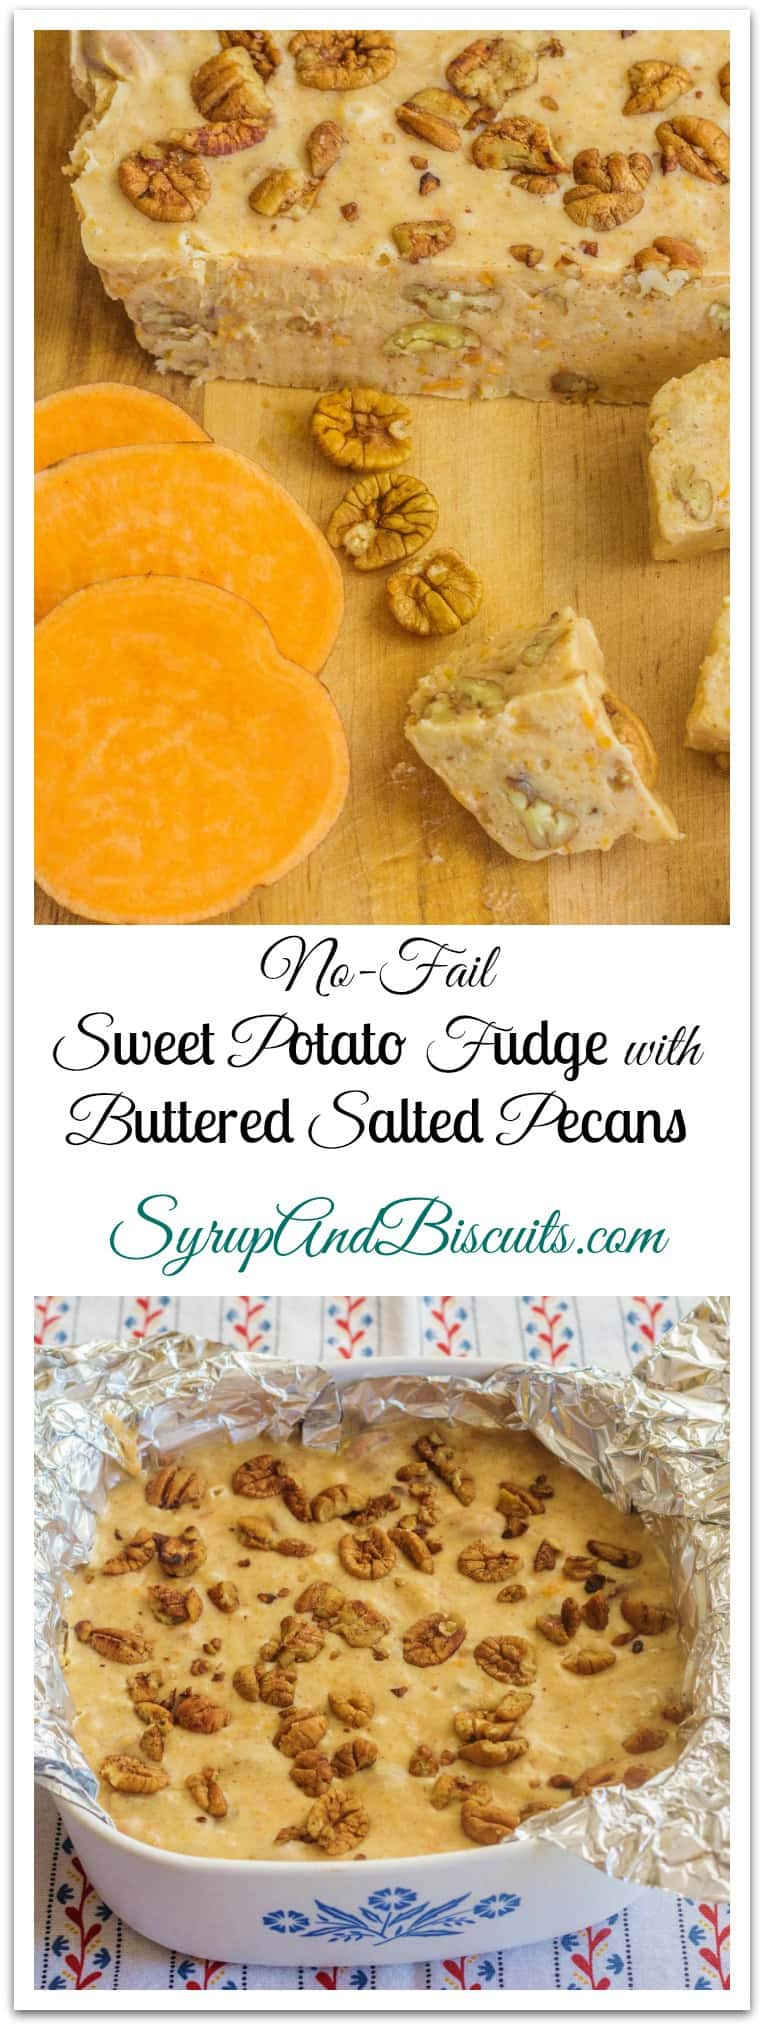 Sweet Potato Fudge with Buttered Salted Pecans is no-fuss, no-fail when made with sweetened condensed milk. Pecans are toasted in butter, sprinkled with salt and added to the fudge mixture. #fudge #sweetpotato #syrupandbiscuits